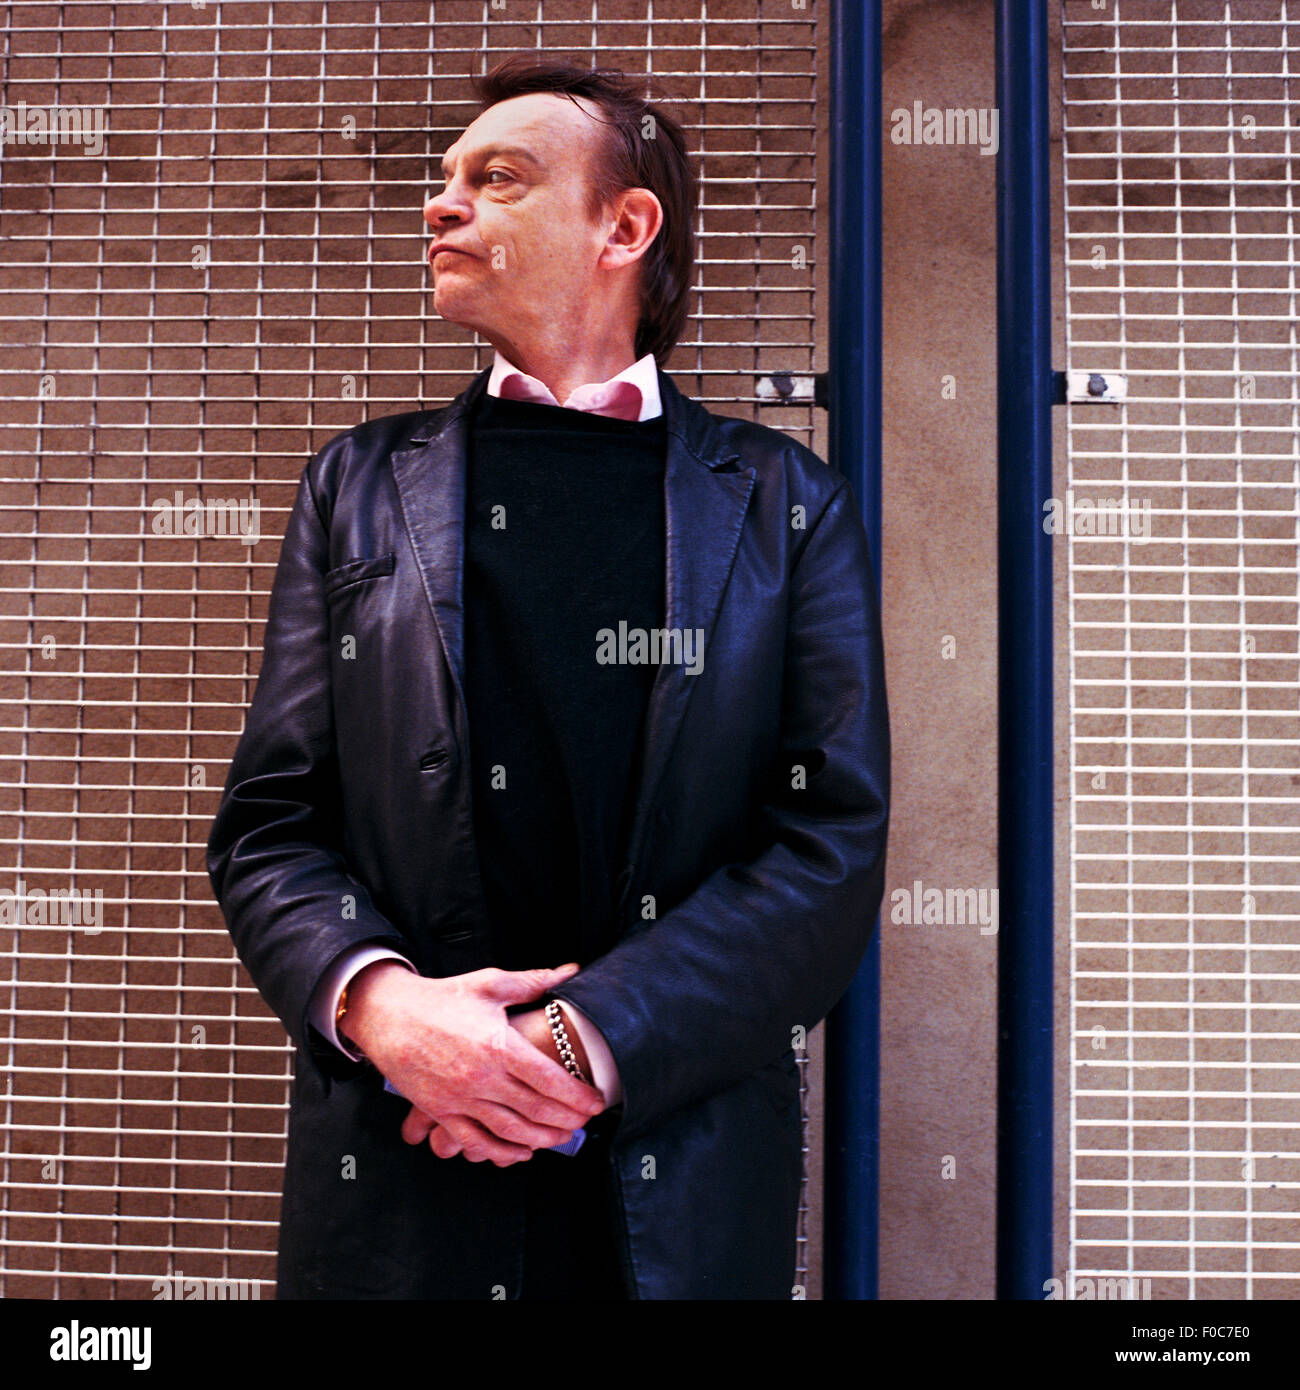 Mark E Smith lead singer of the Fall band photographed in London, England, United Kingdom. Stock Photo